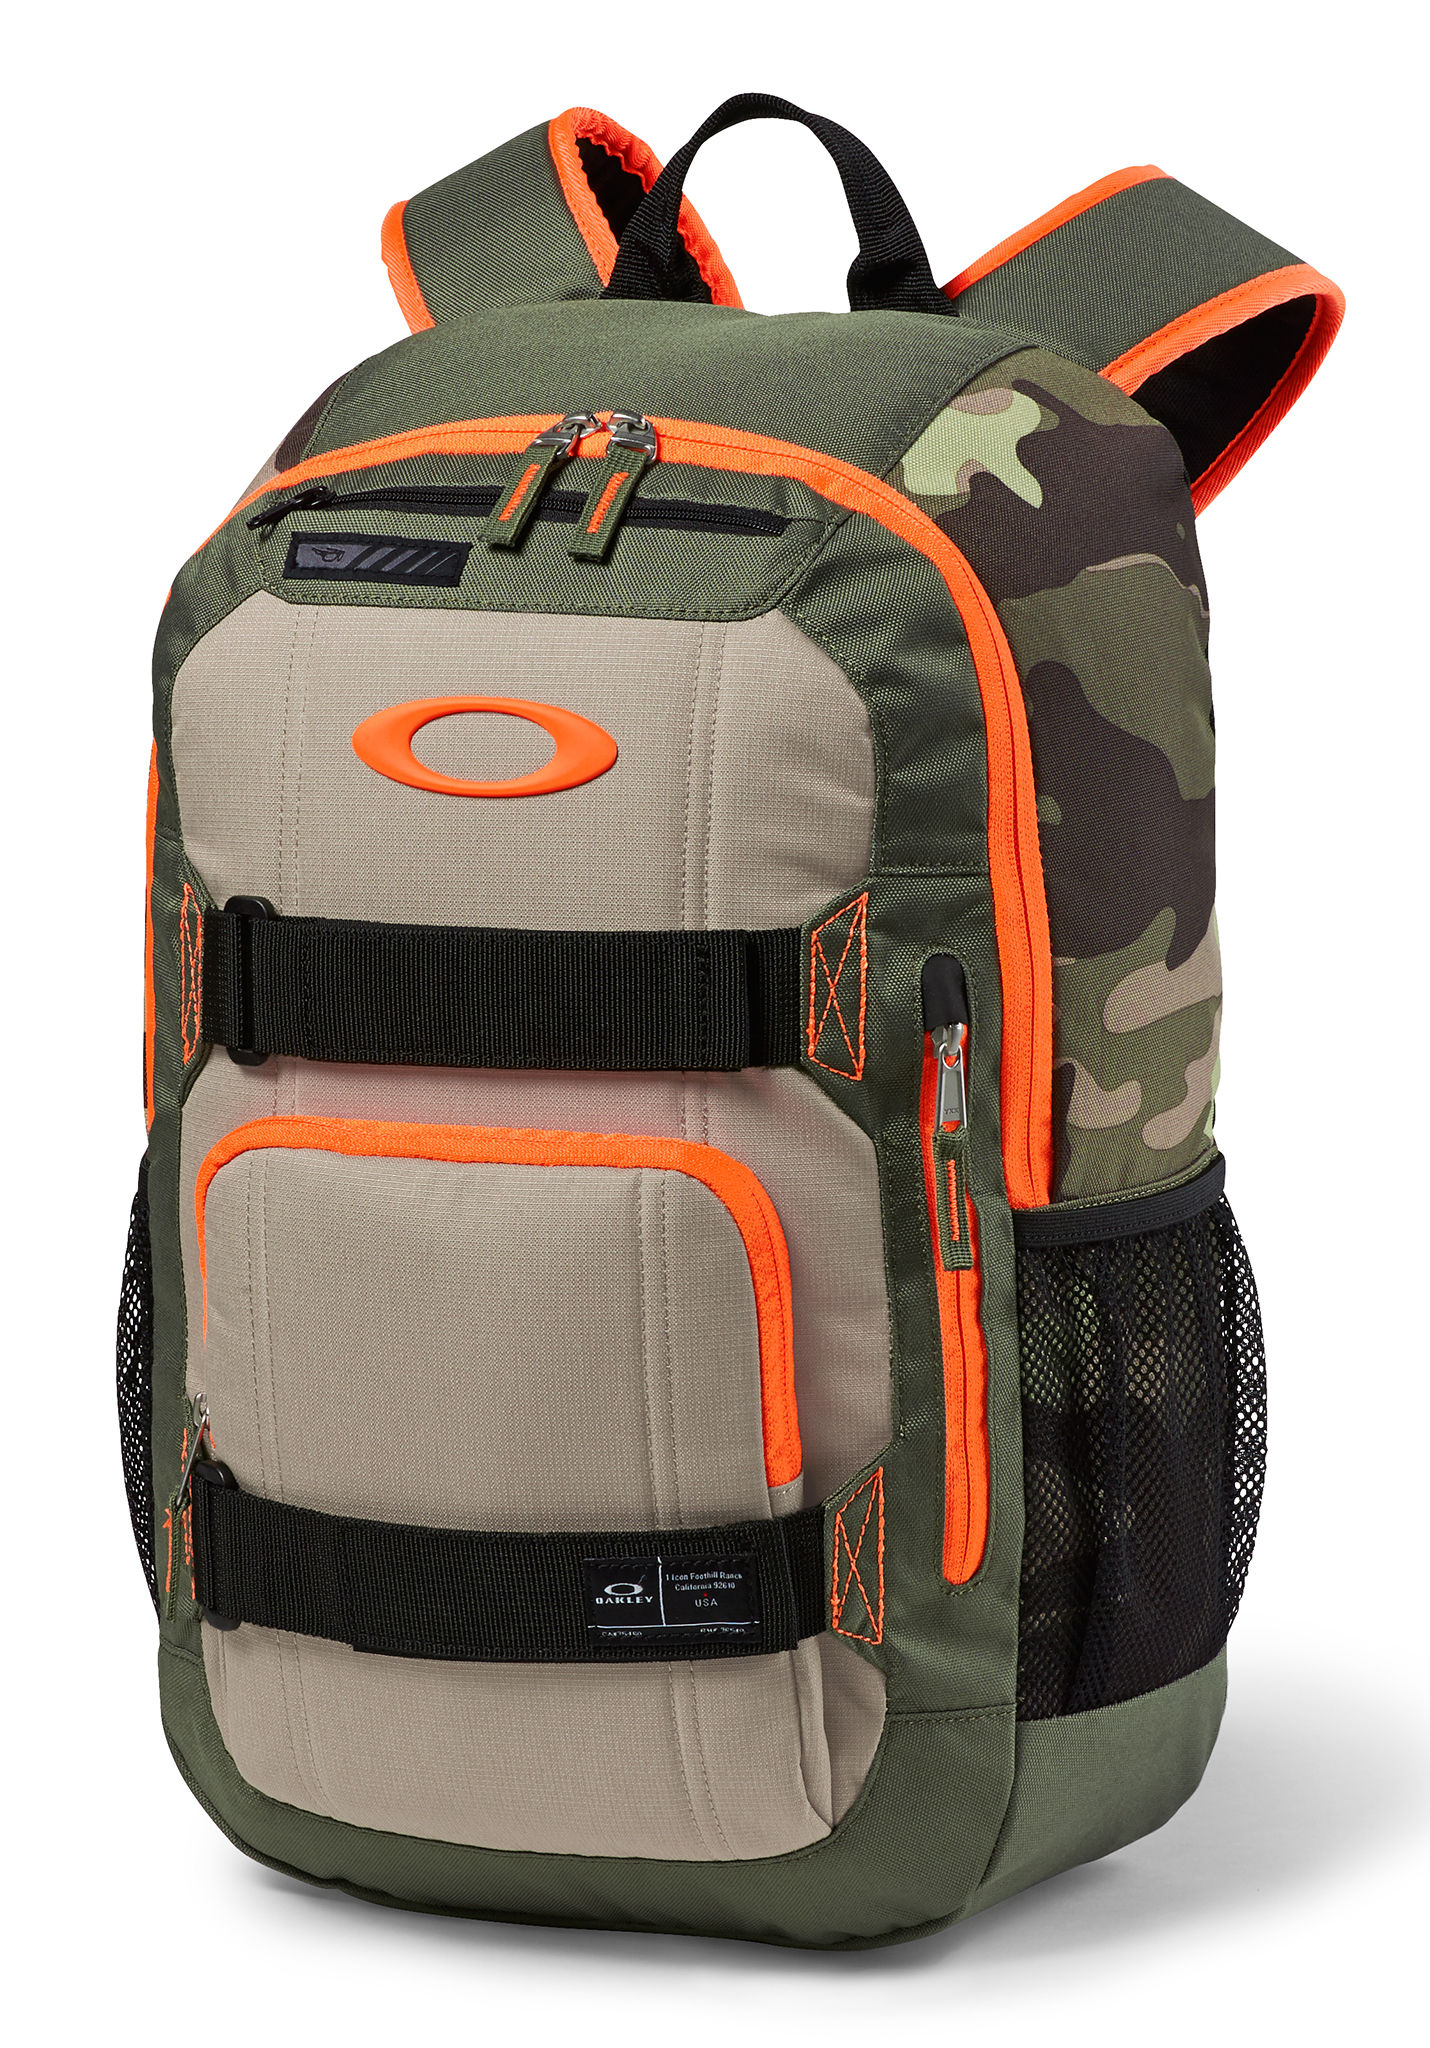 OAKLEY Enduro 22 - Backpack for Men - Green - Planet Sports 8f94b5edeb